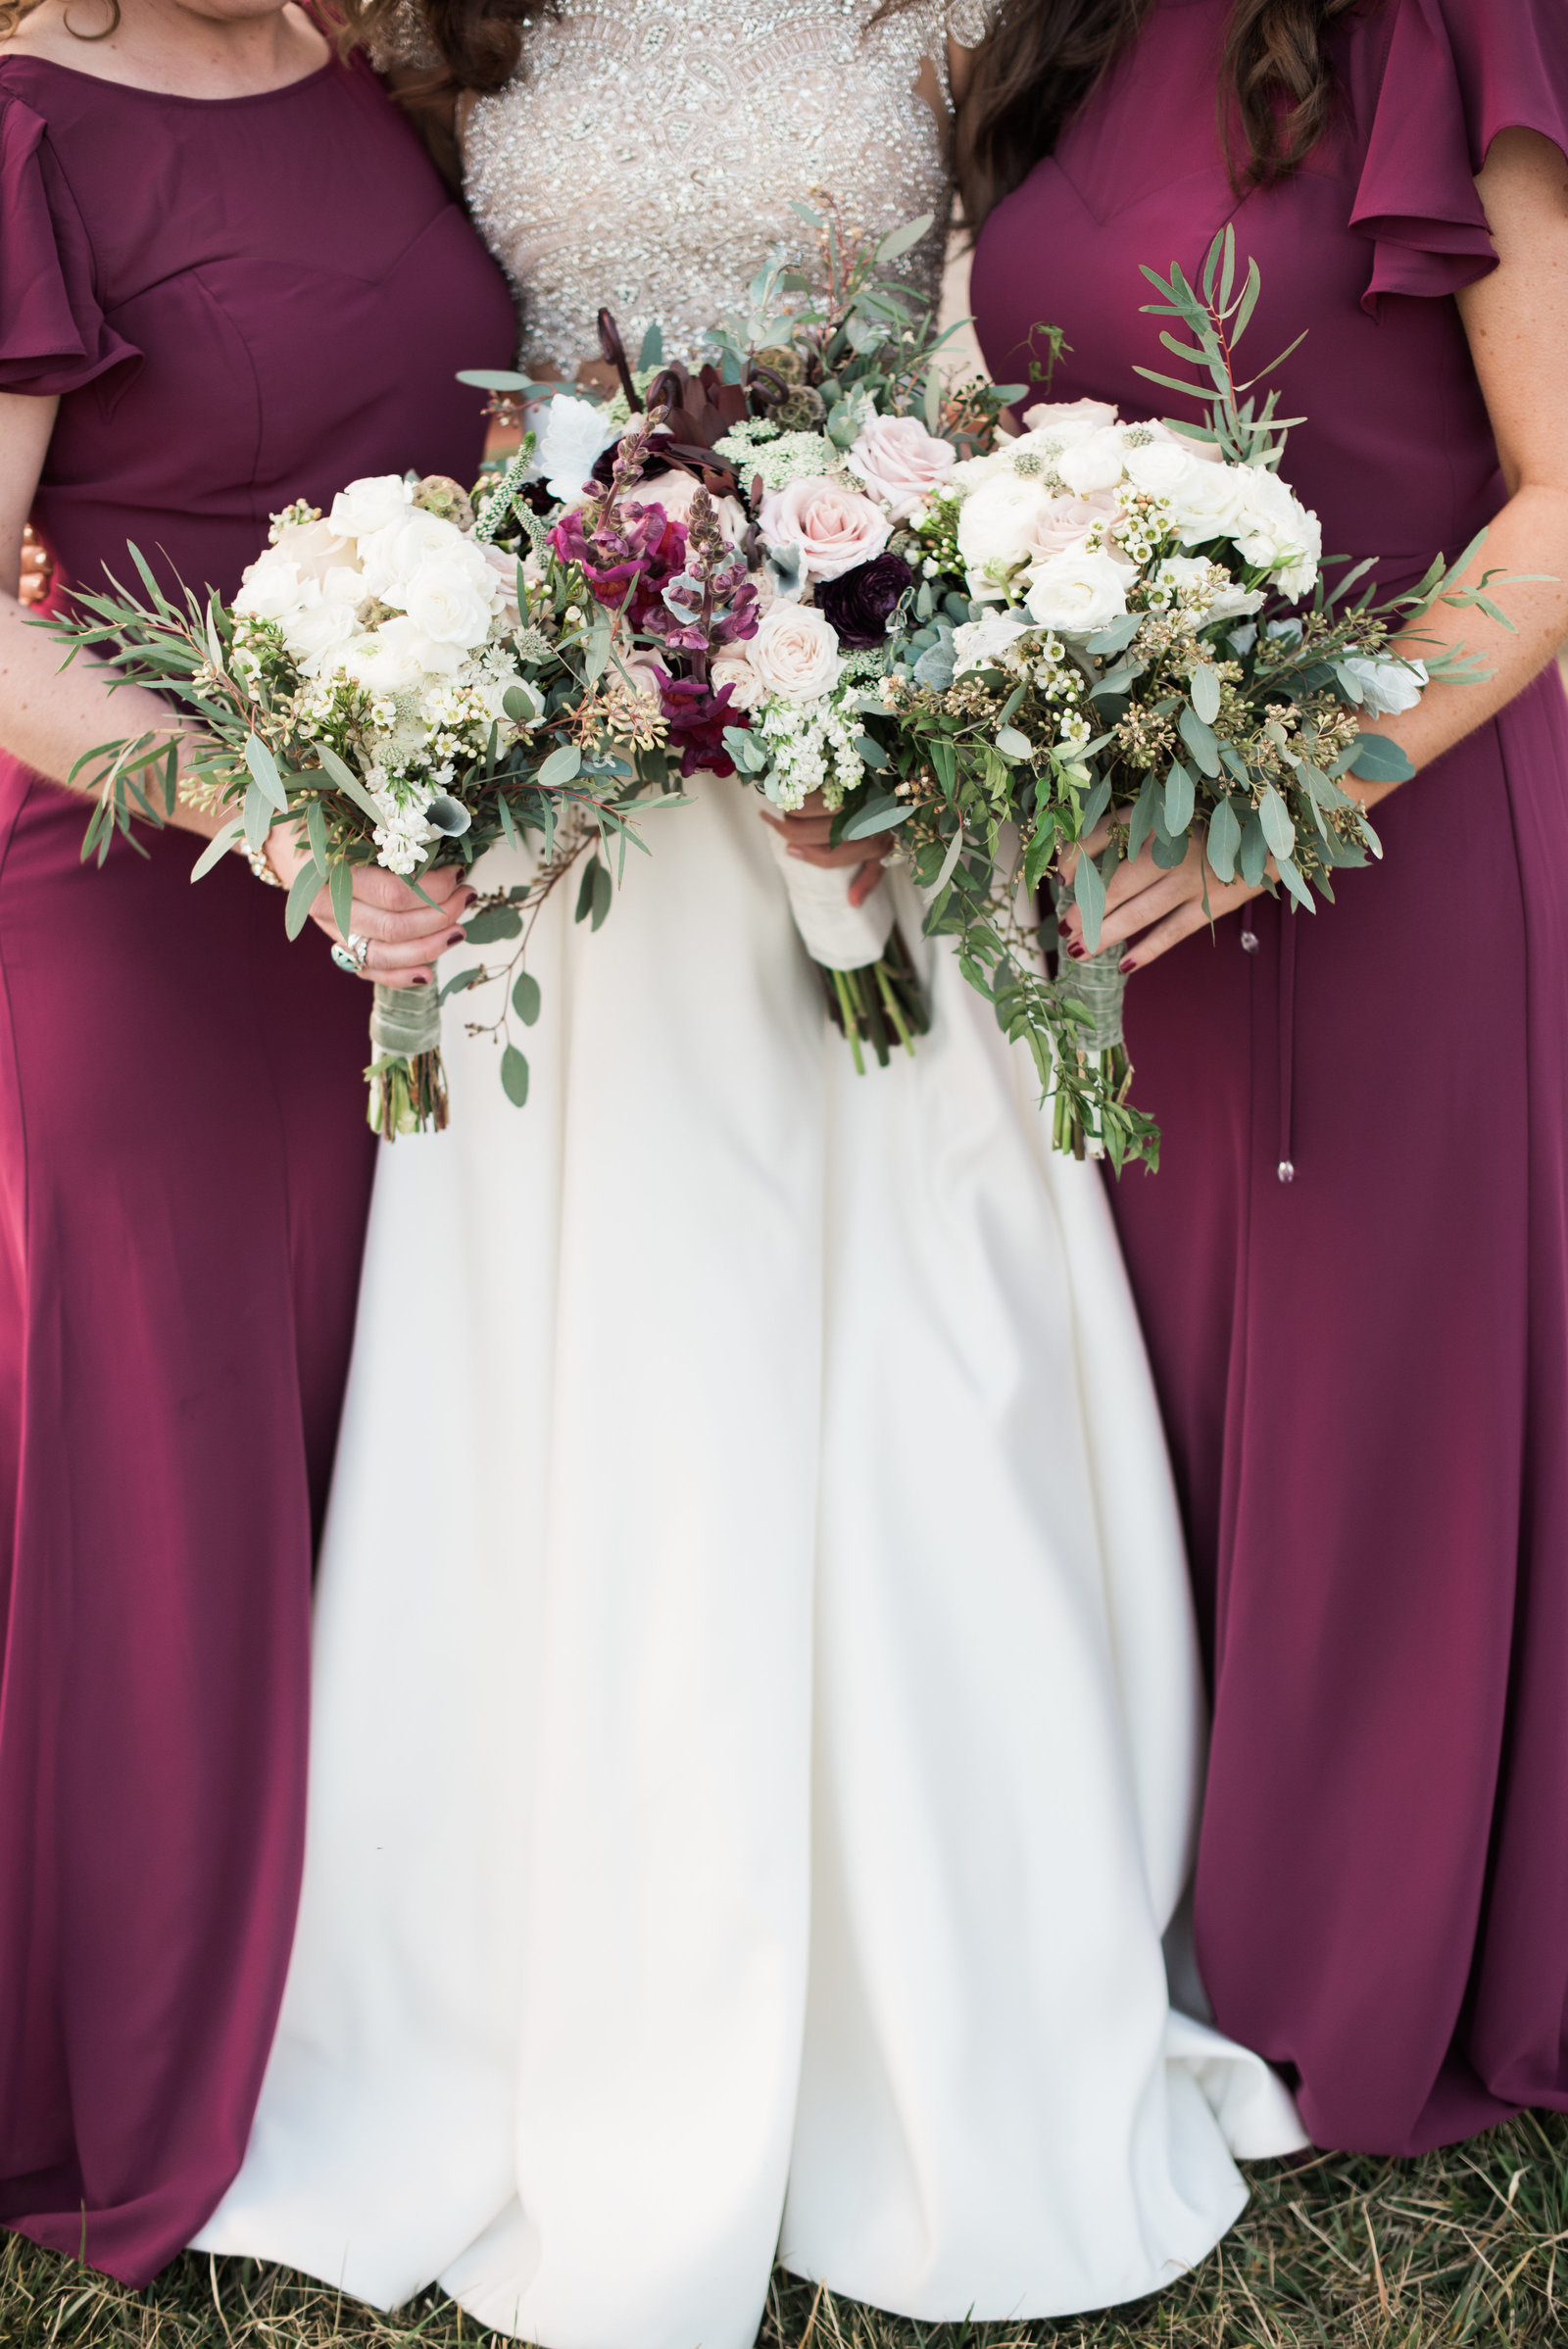 Maroon Bridesmaids Dresses from Early Mountain Vineyards Winter Wedding